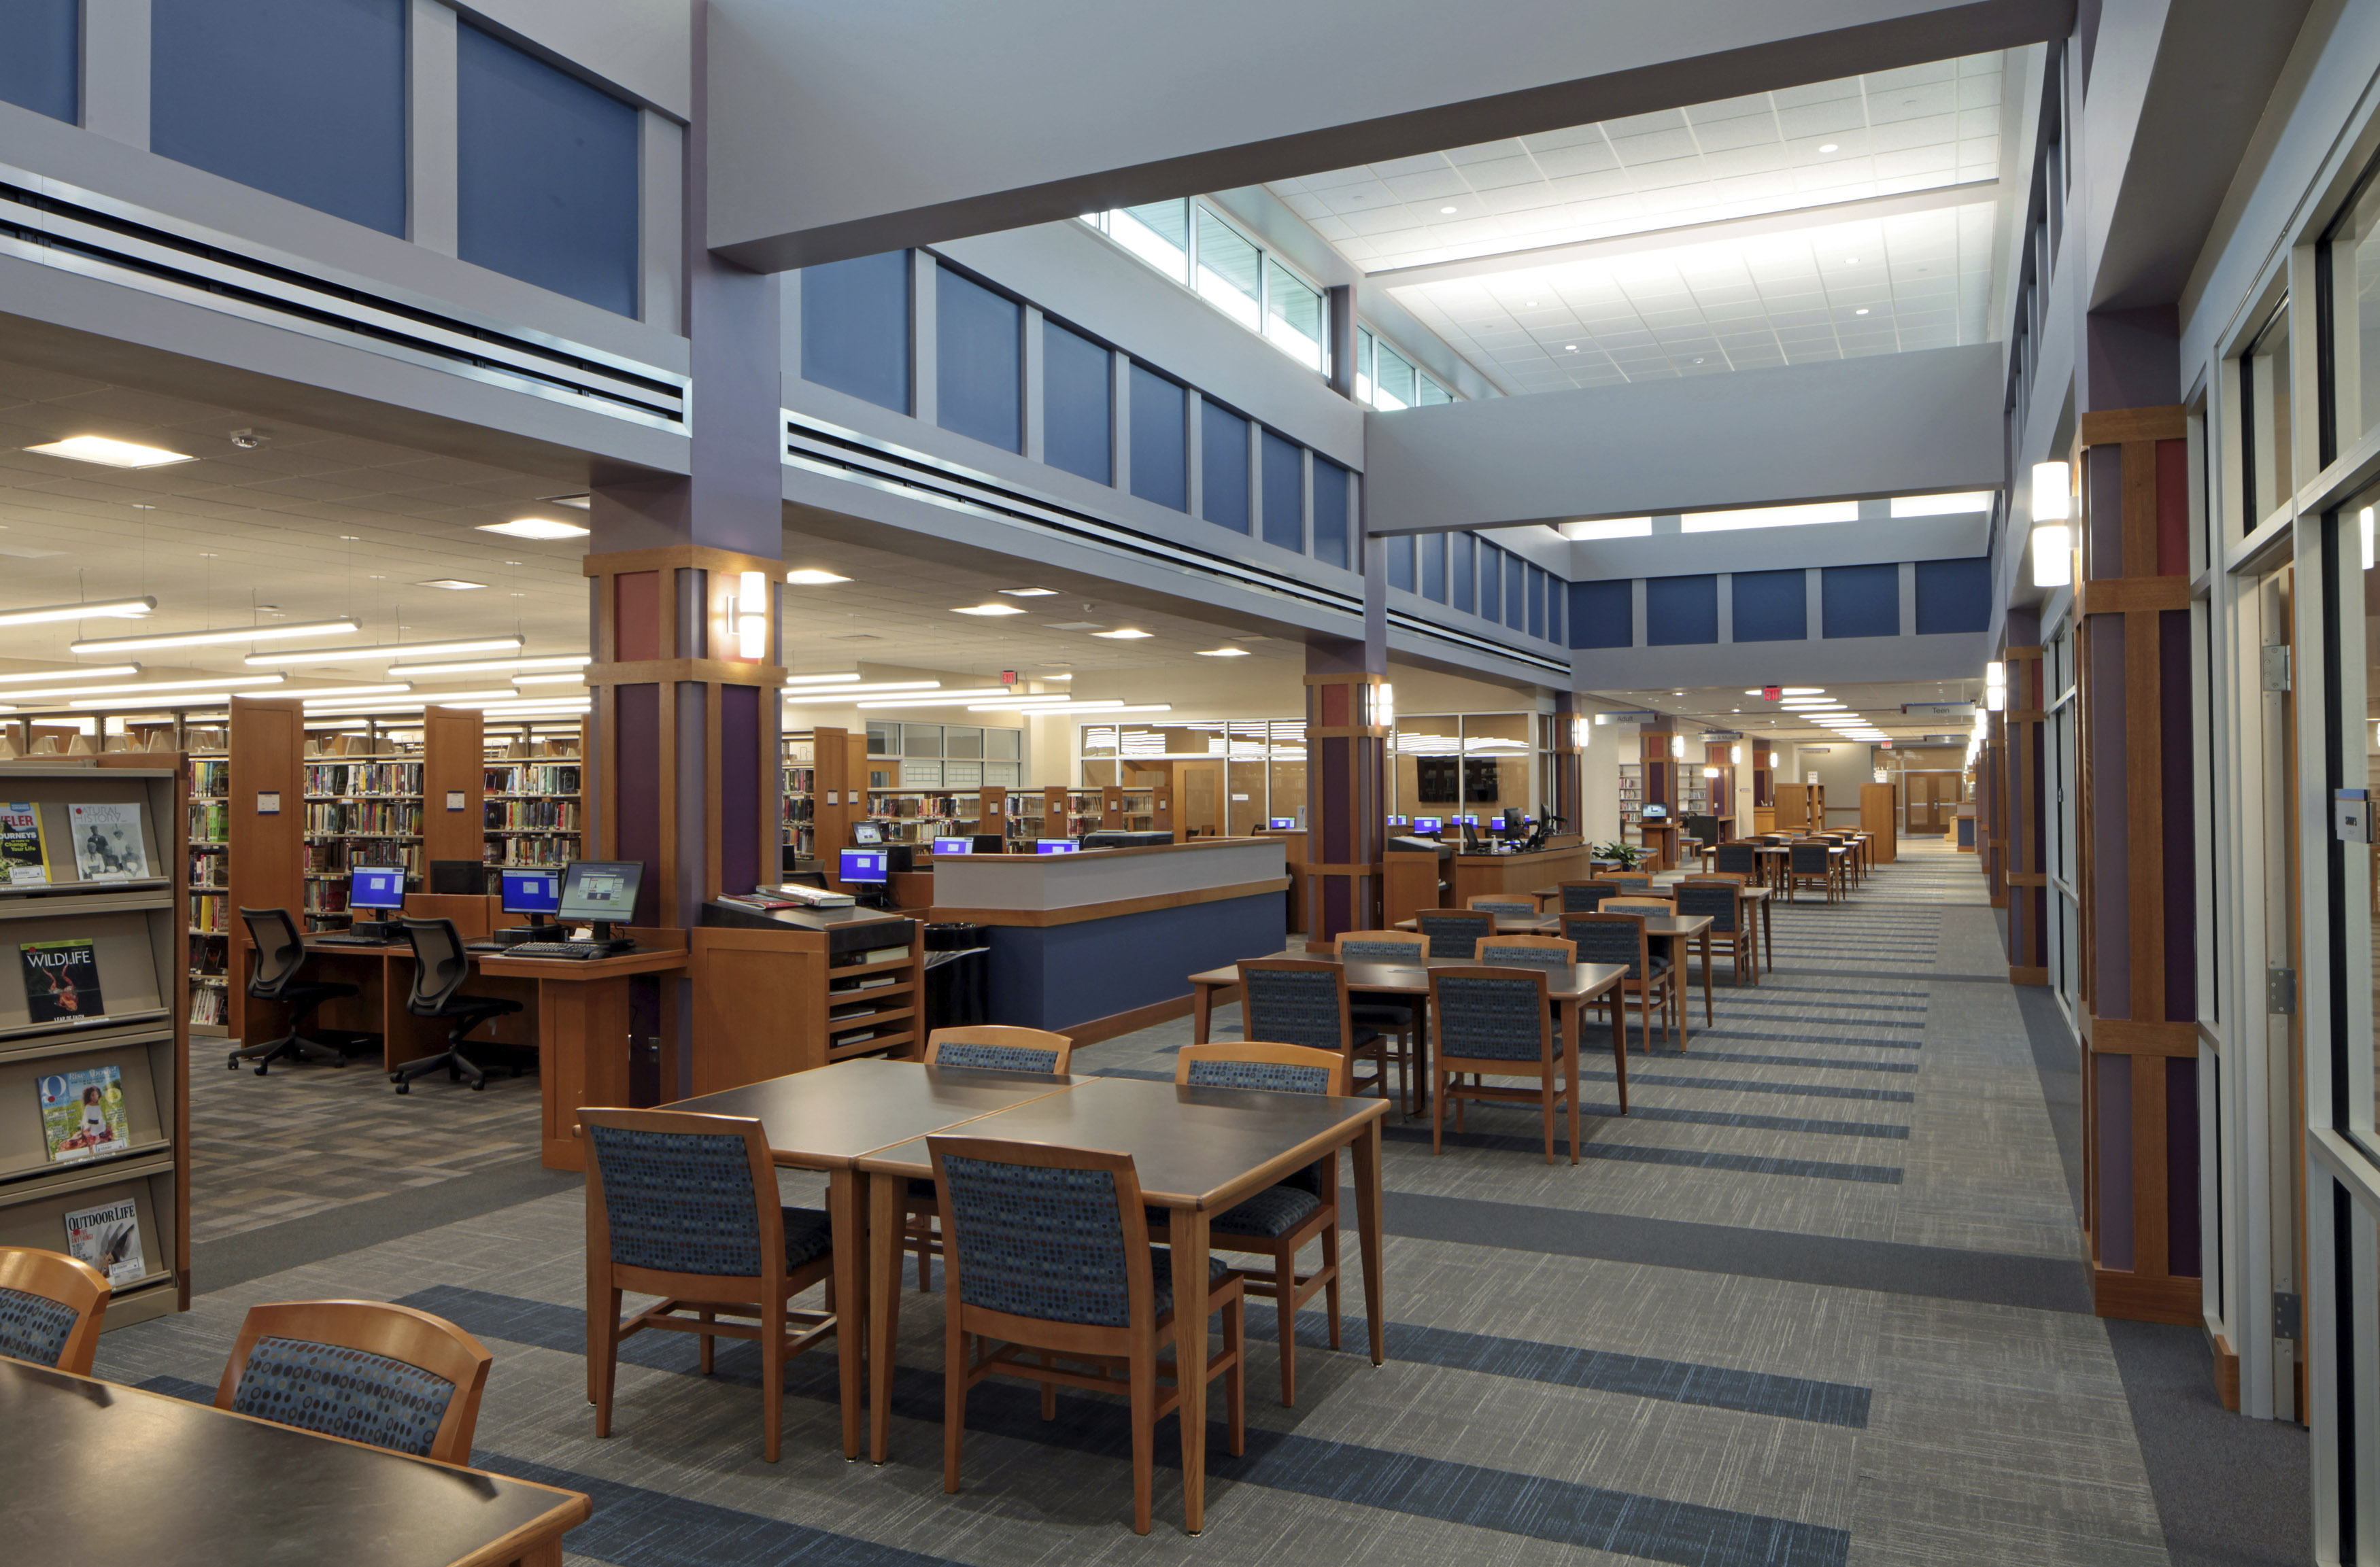 Commerce Township Library reading room